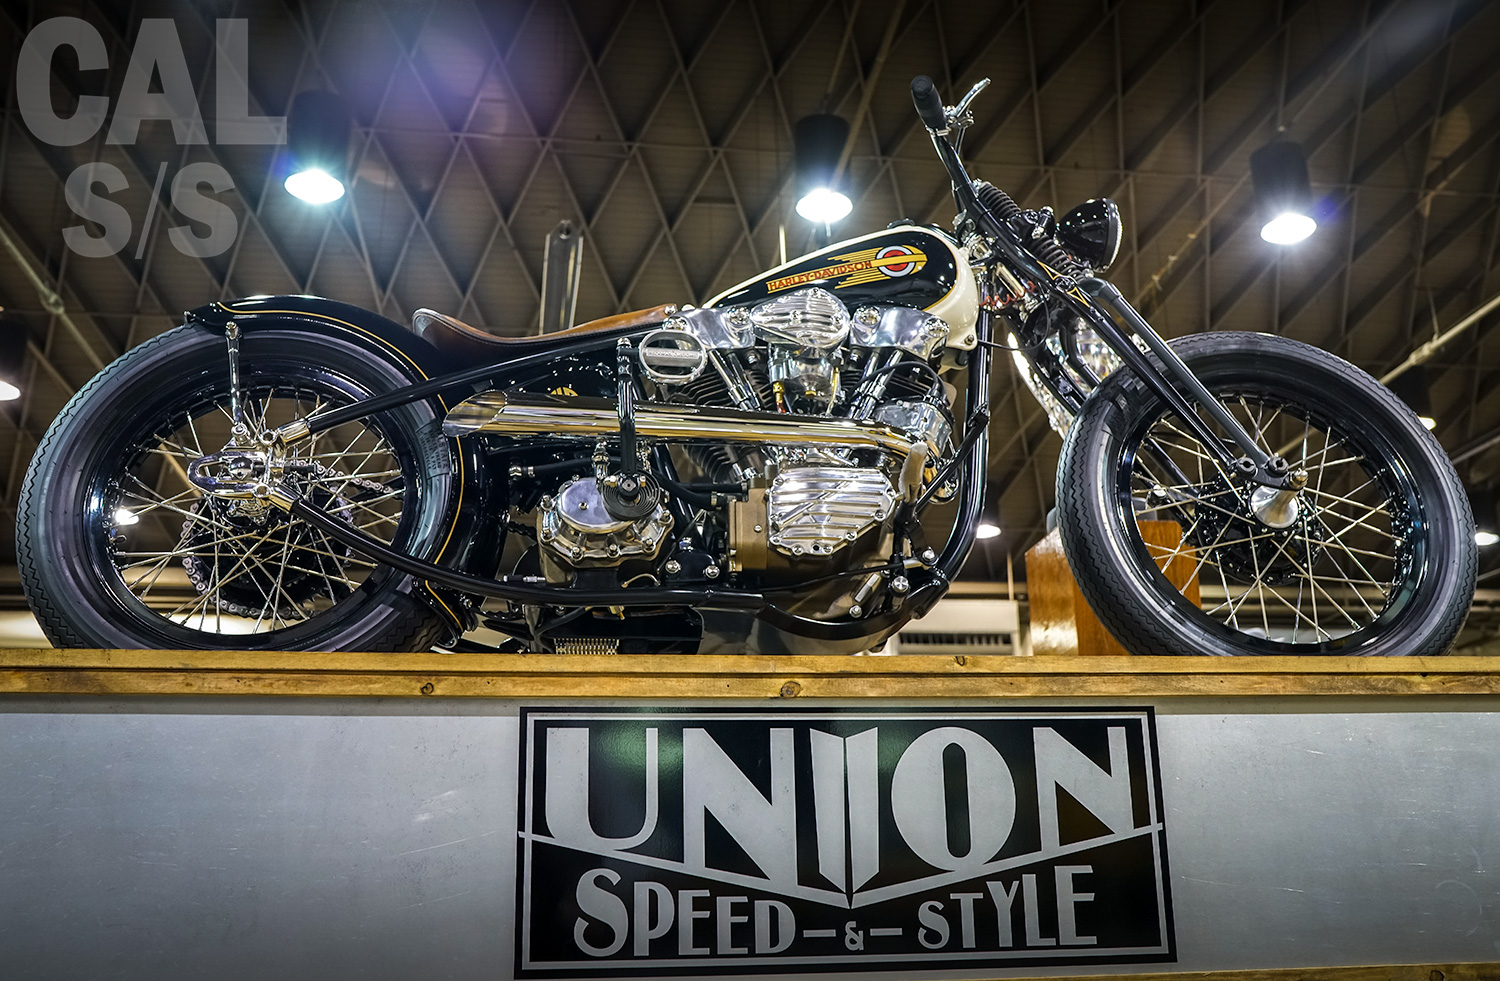 Union Speed and Style